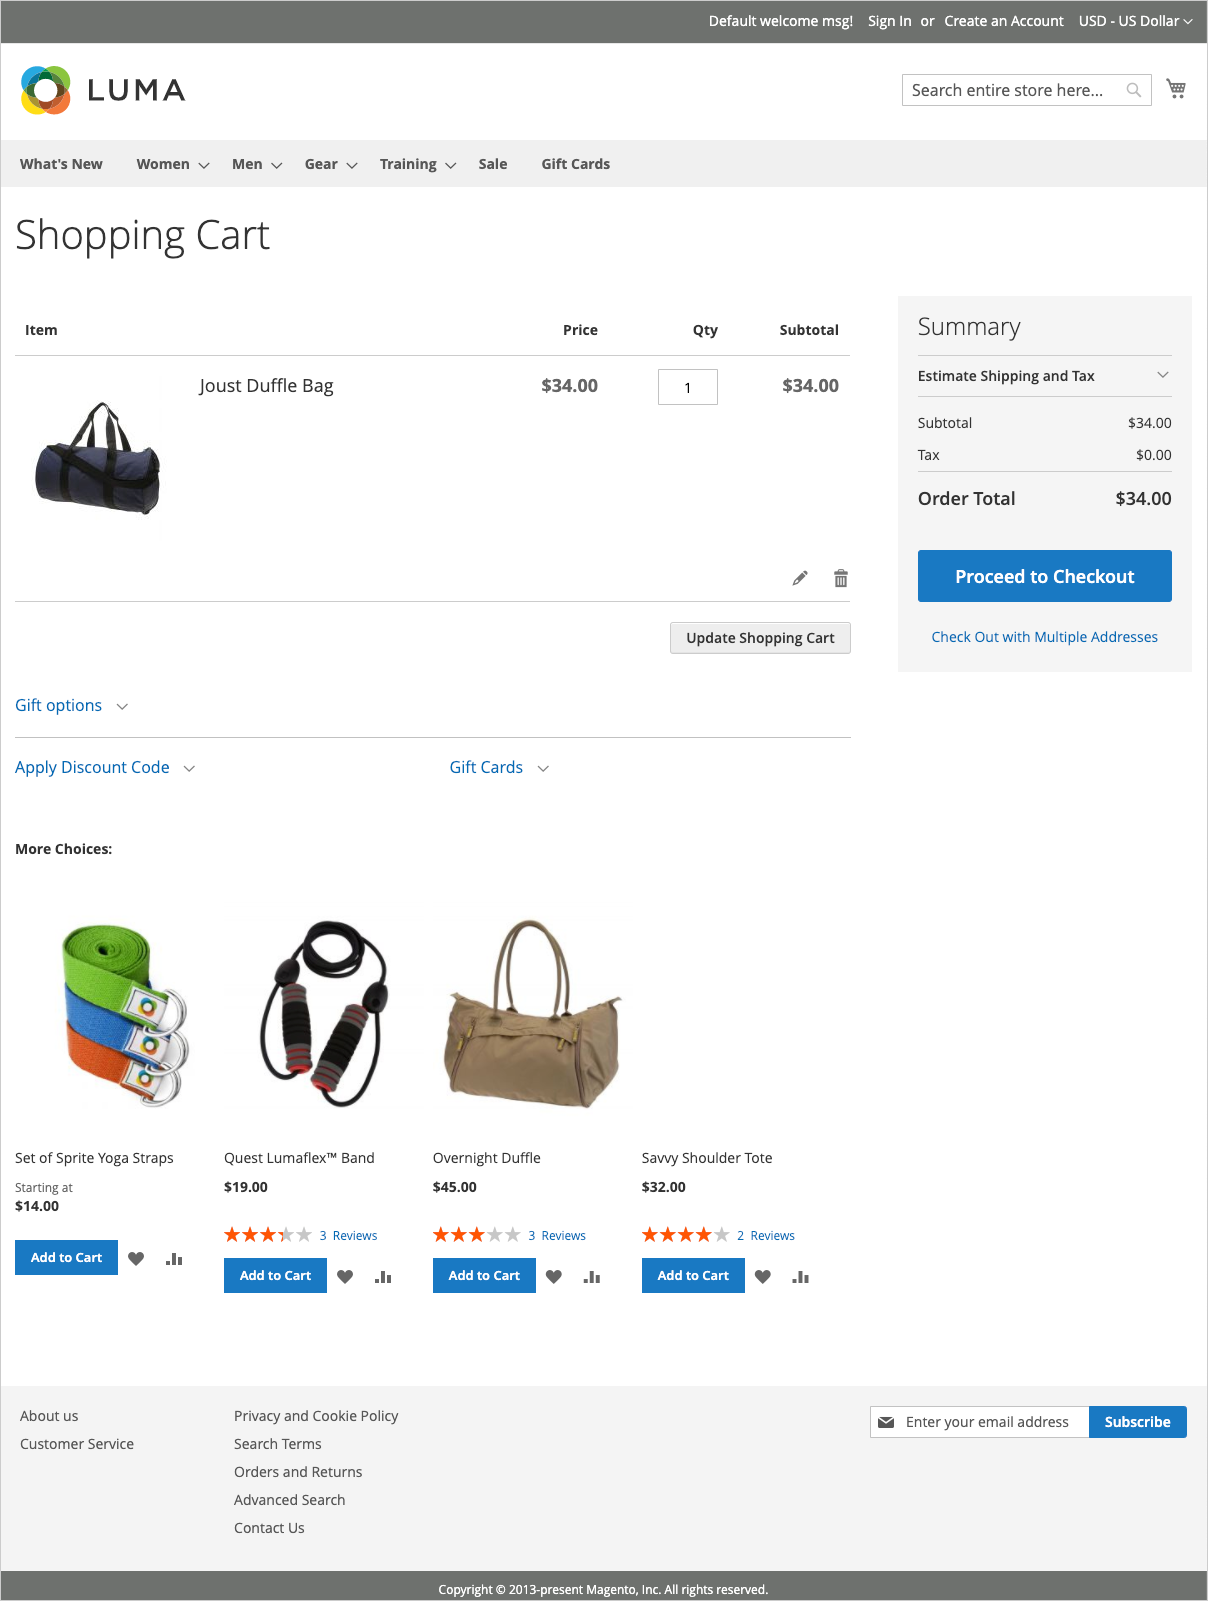 The shopping cart page displays tools the shopper can use to manage the products for their order